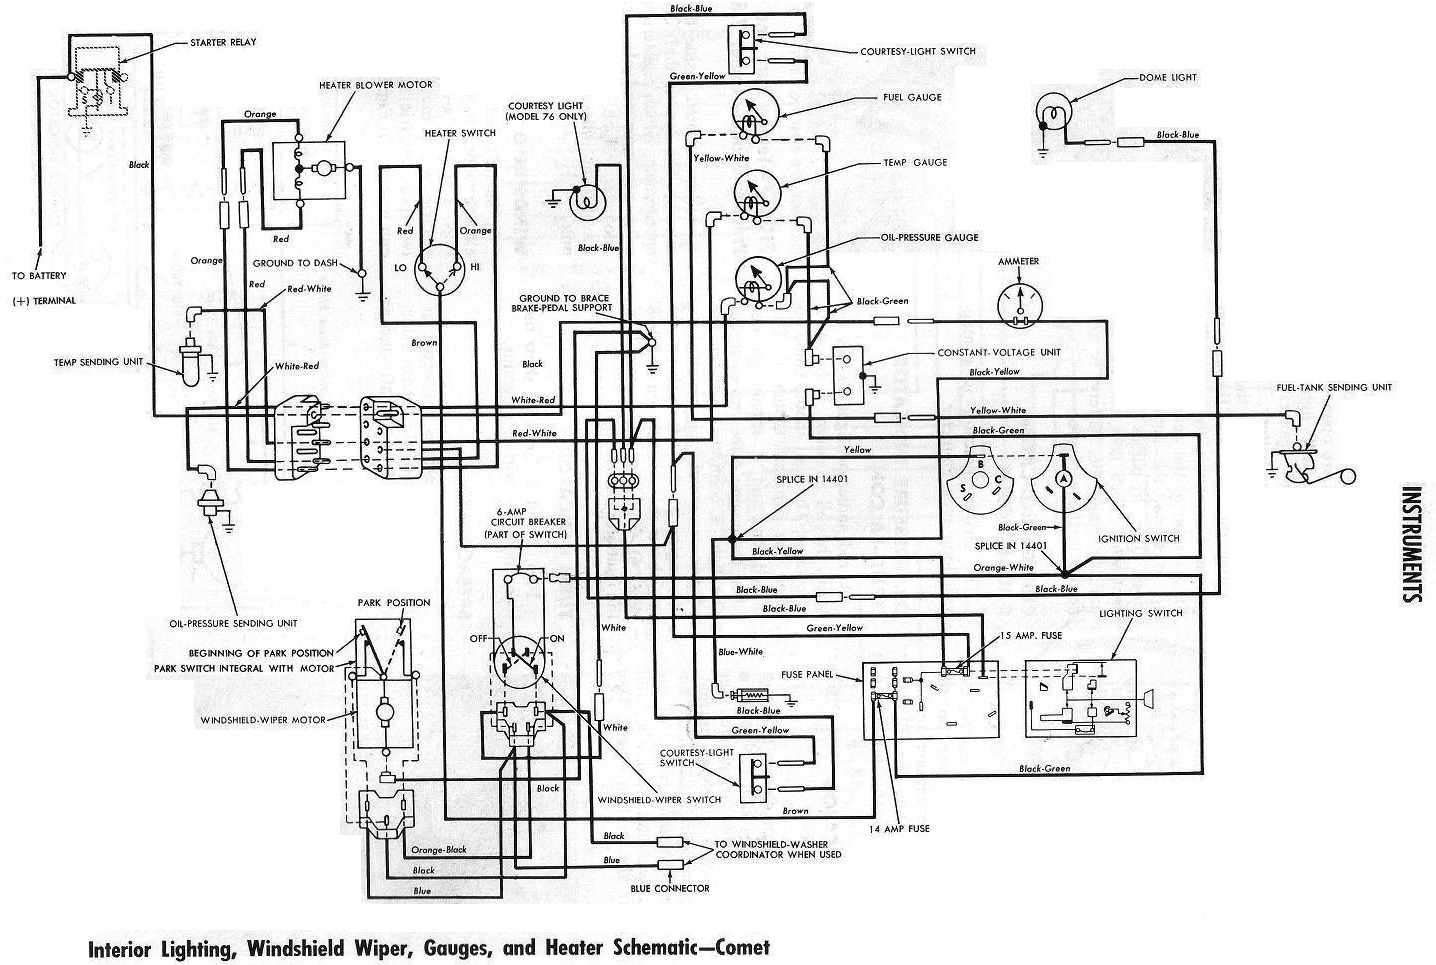 1963 mercury monterey wiring diagram